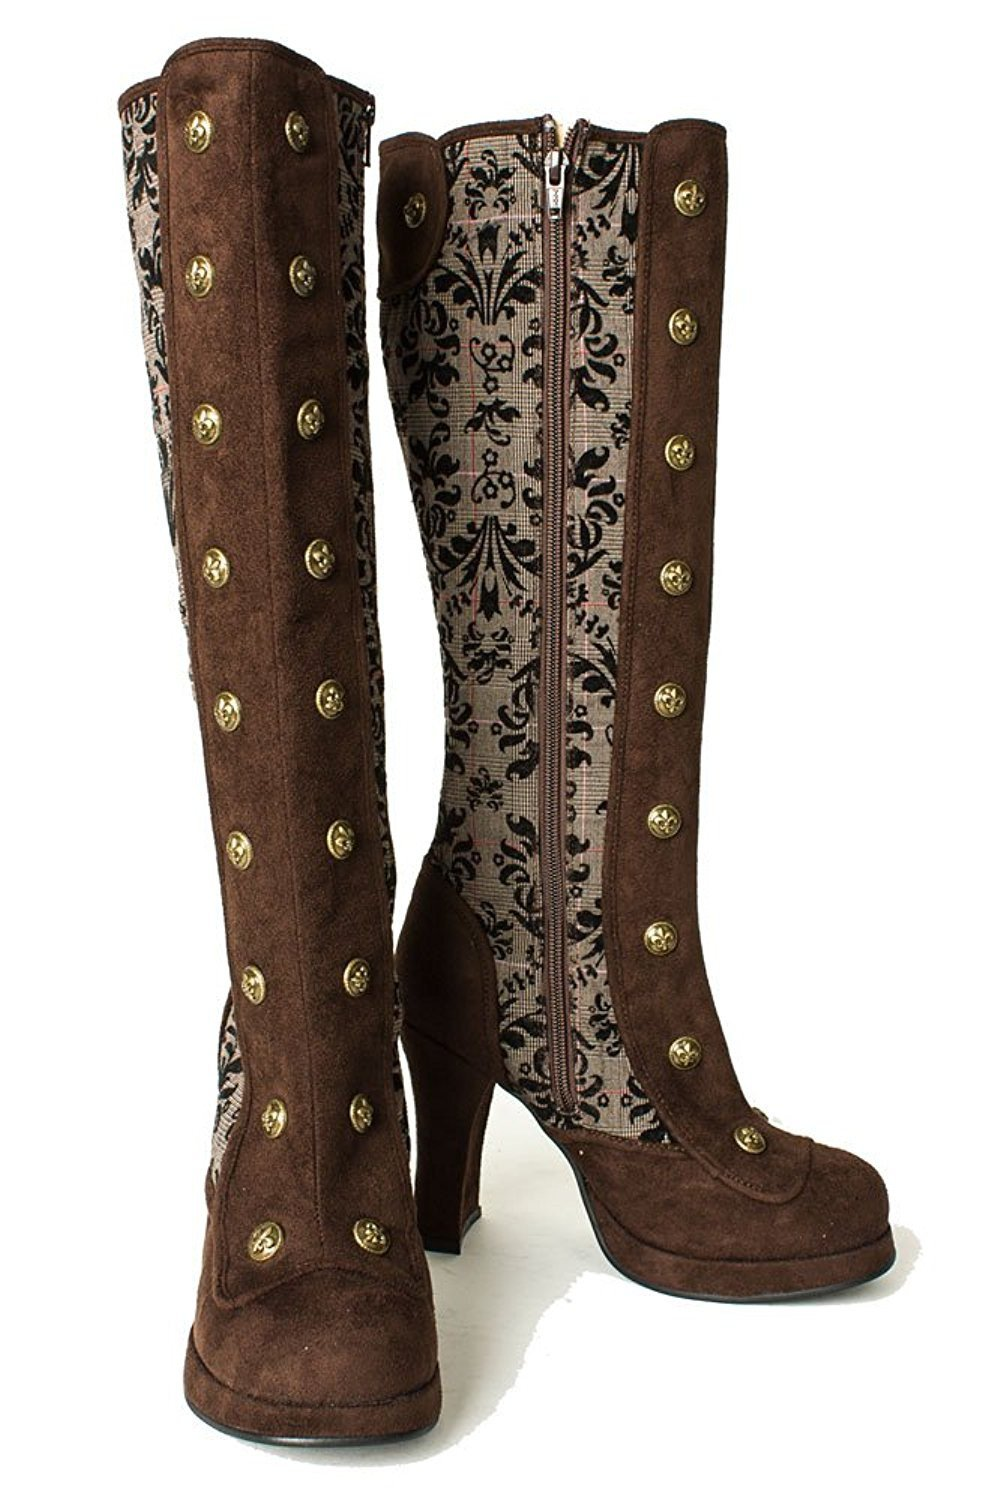 Vintage Style Western Cosplay Halloween Bridal Wedding Womens Boots 8 by SharpSpirit